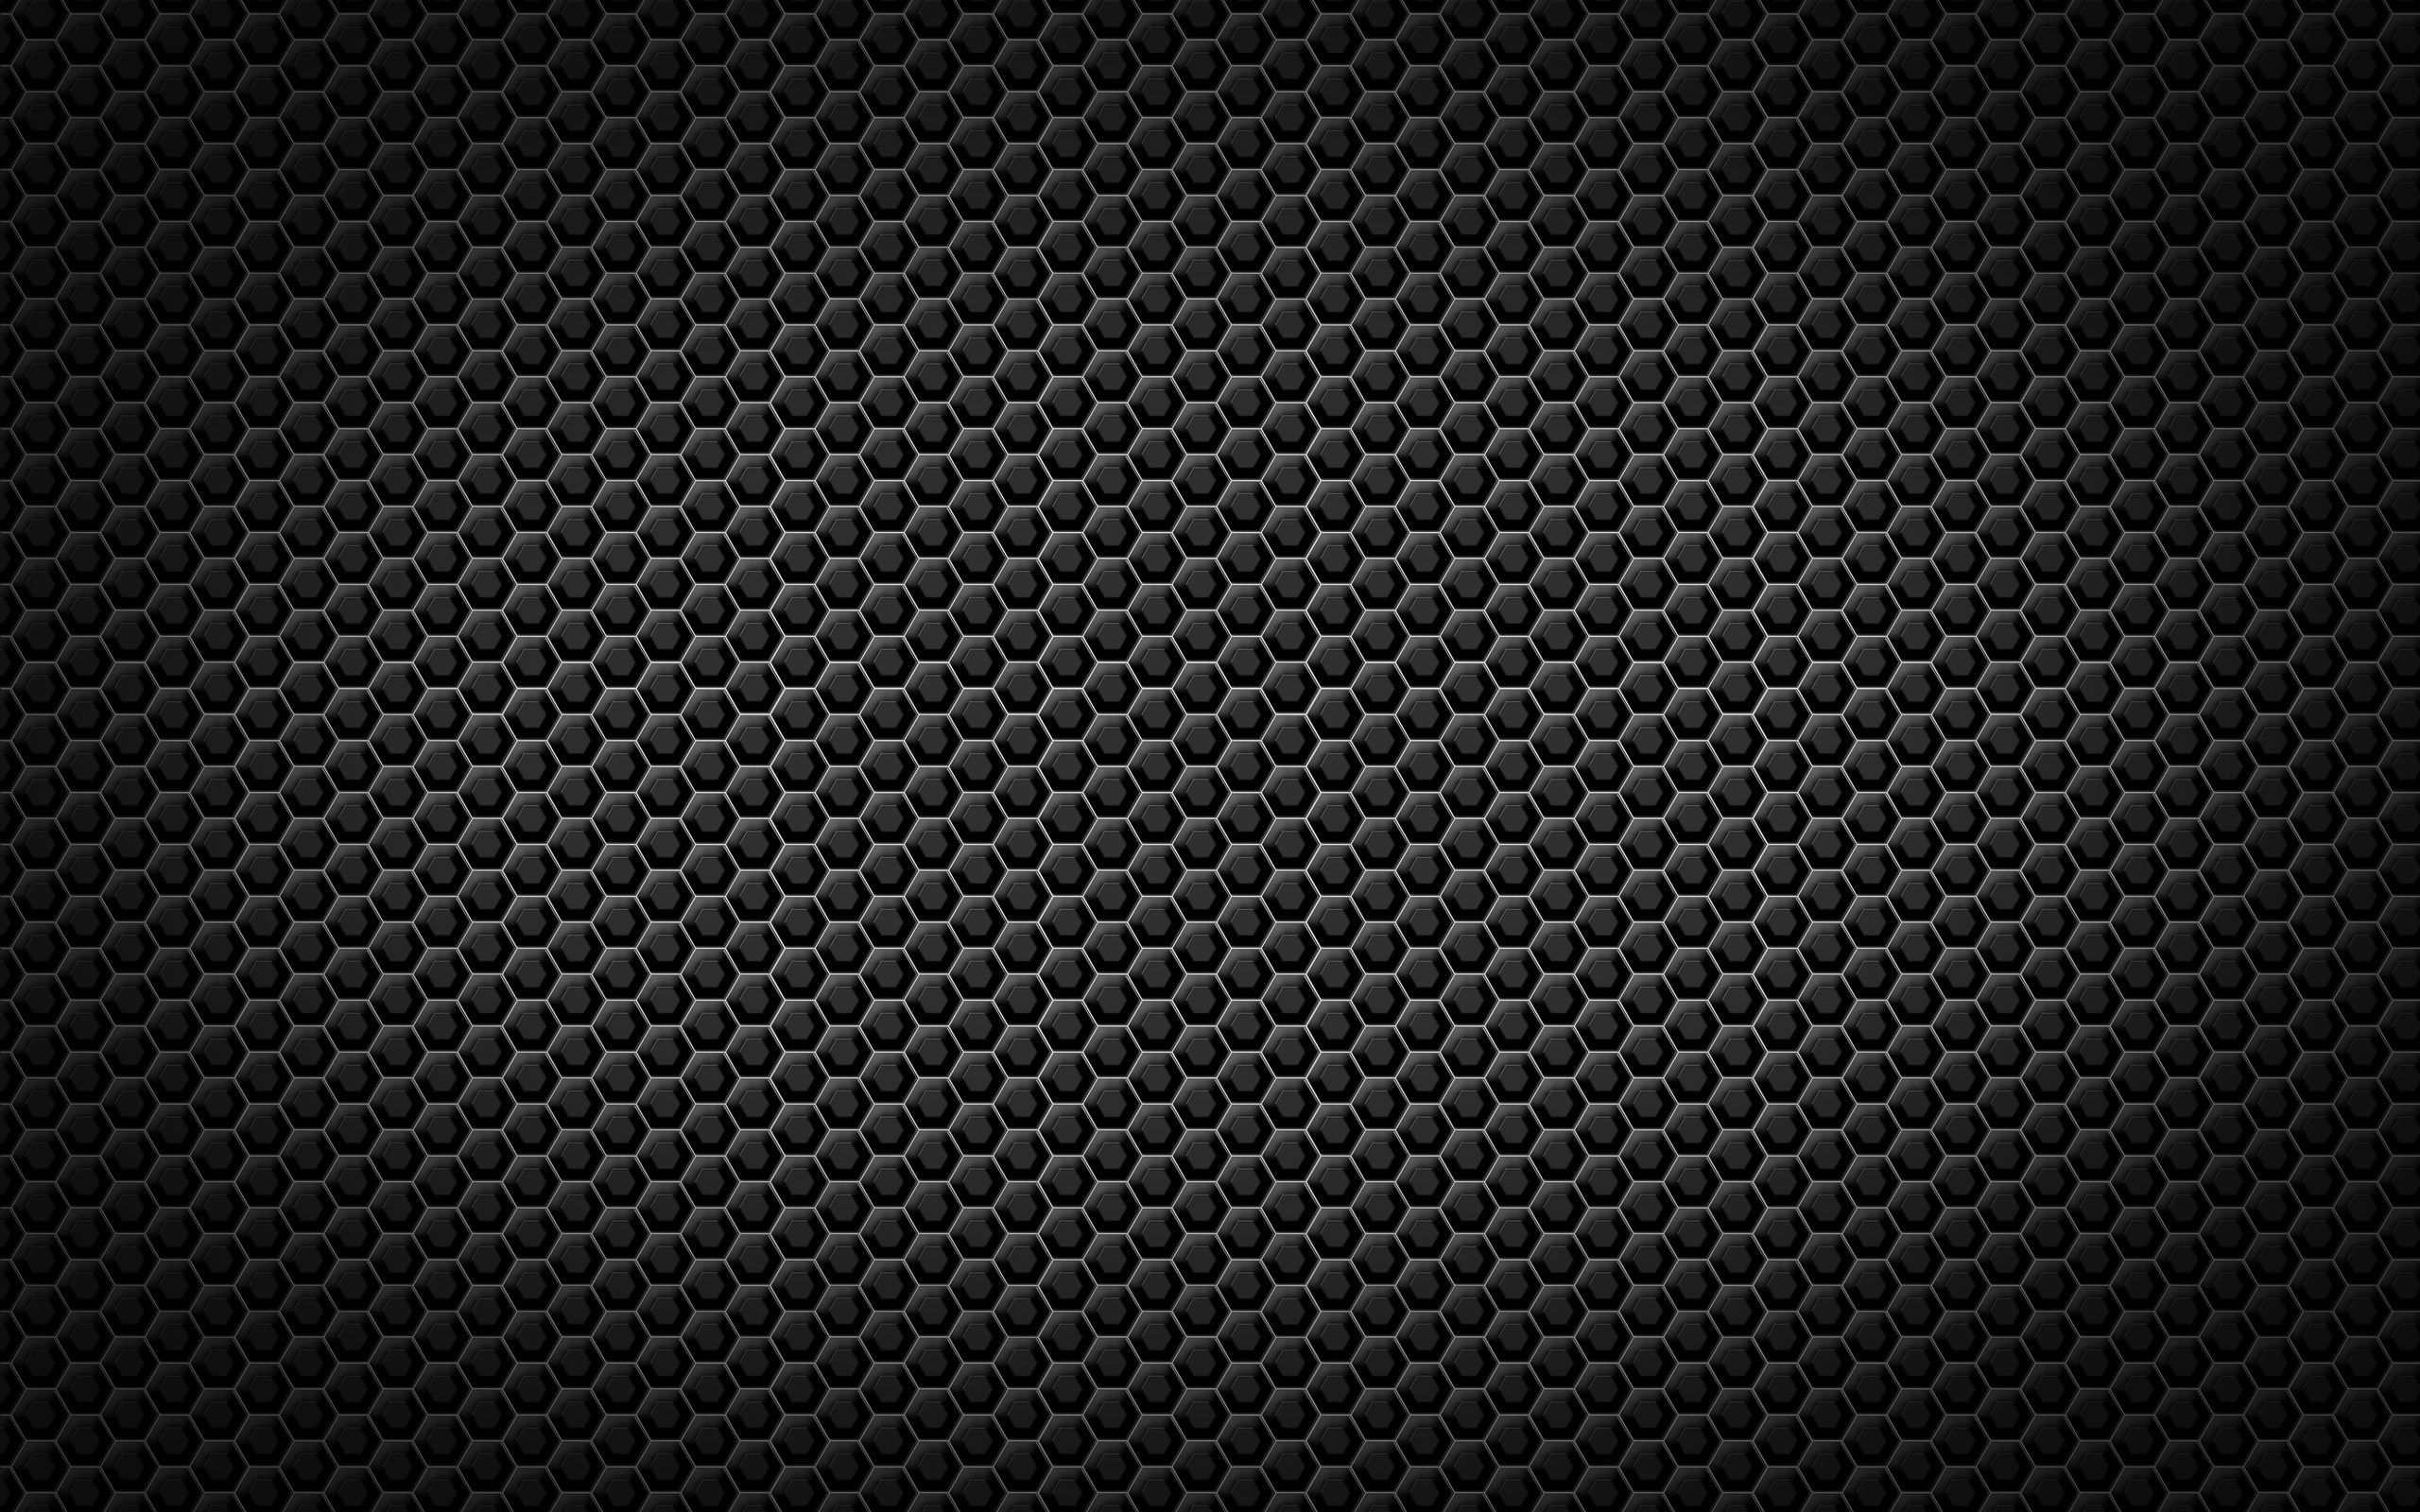 2560x1600 px black image for mac by Judge Smith